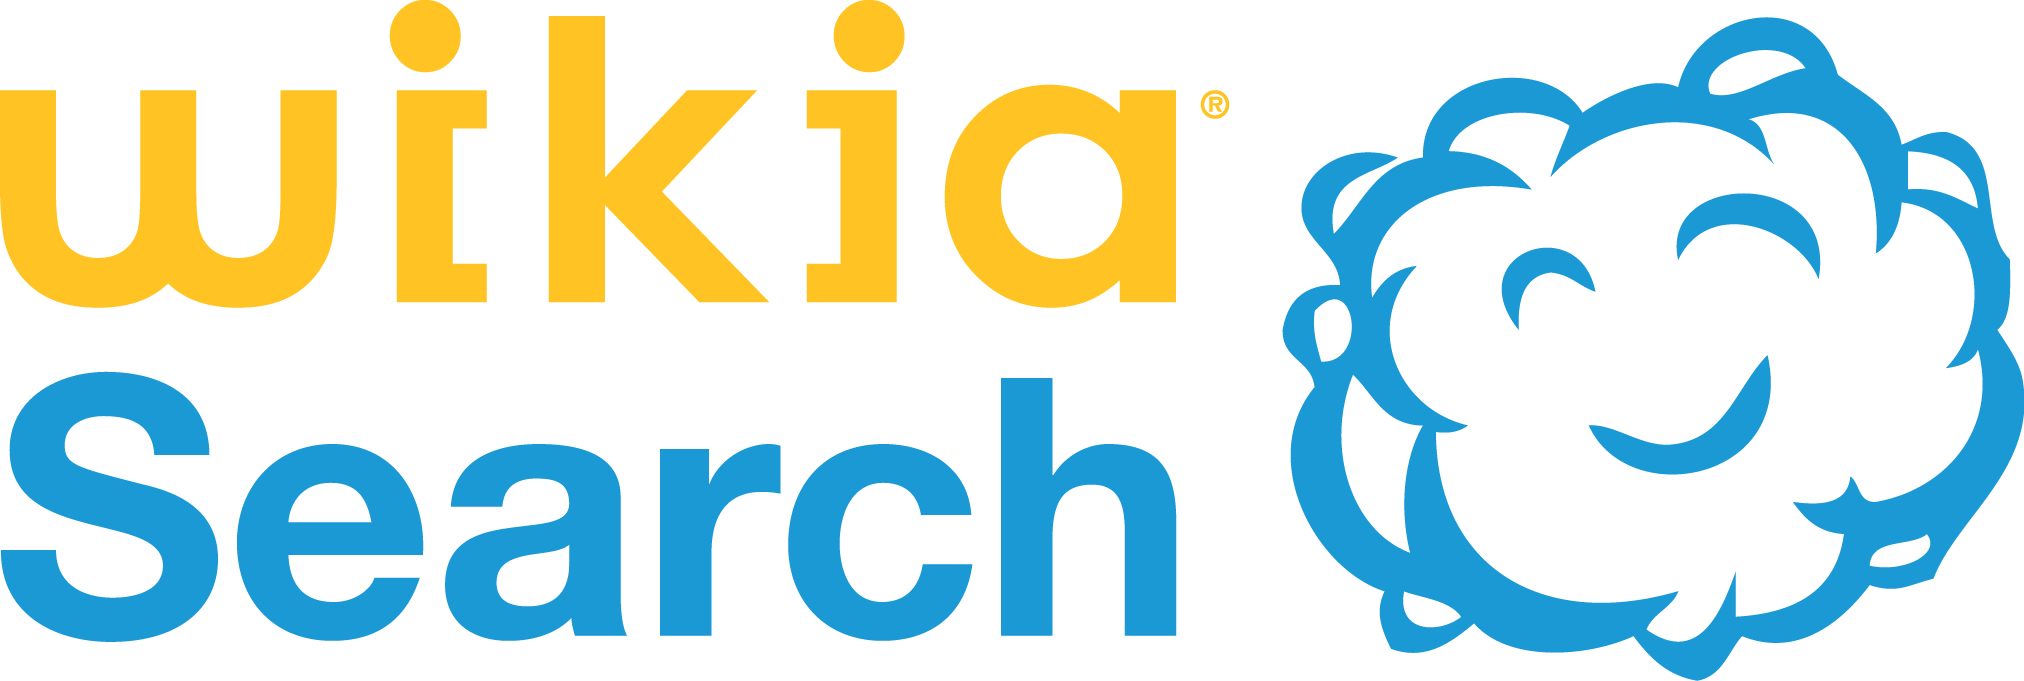 "The logo for Jimmy Wales' ill-fated ""Wikia Search"", featuring the words ""wikia search"" in yellow and blue, next to a picture of a smiling blue cloud."